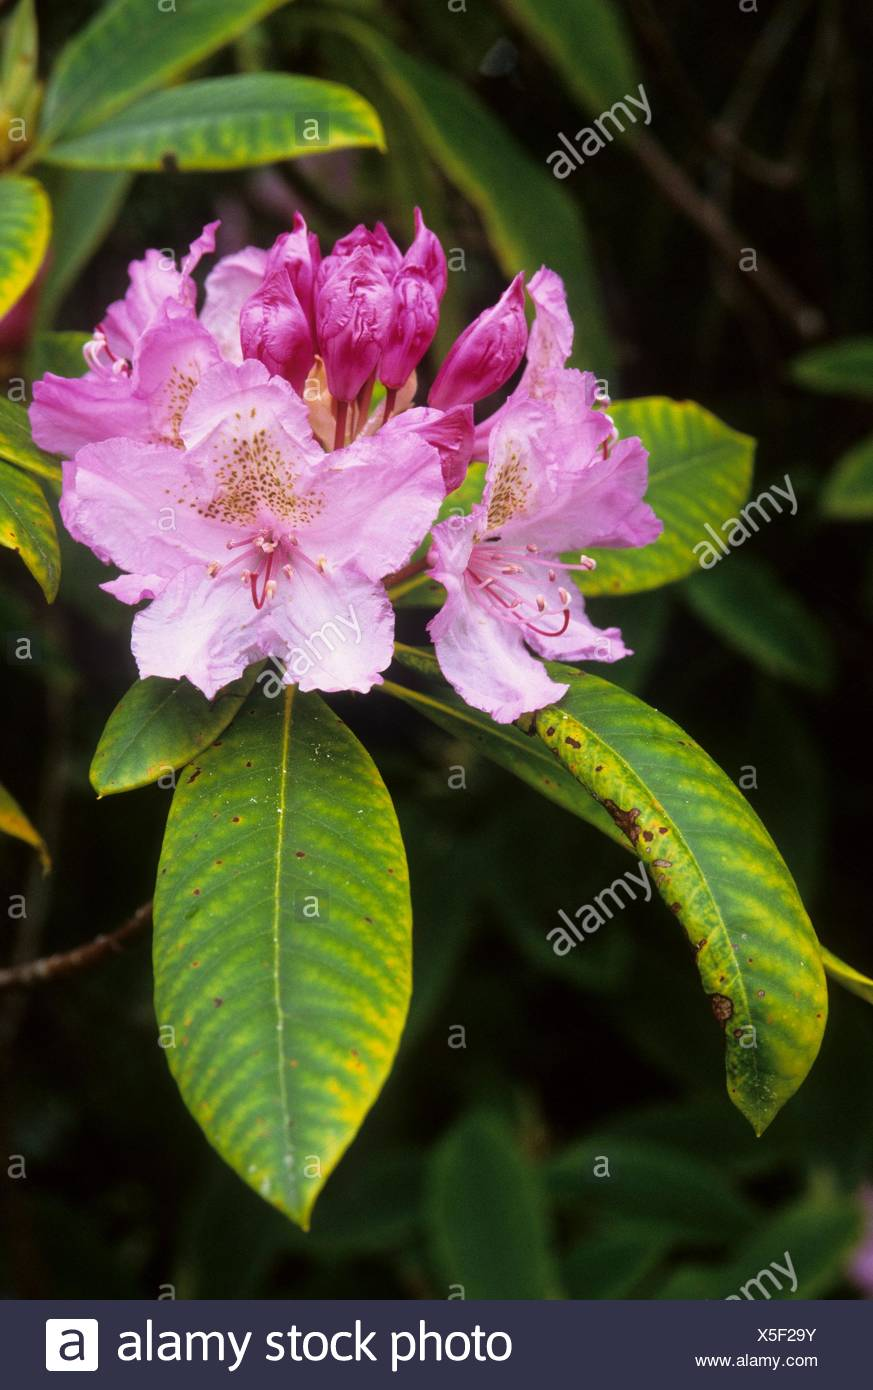 Pacific rhododendron (Rhododendron macrophyllum), Oregon Dunes National Recreation Area, Oregon. - Stock Image